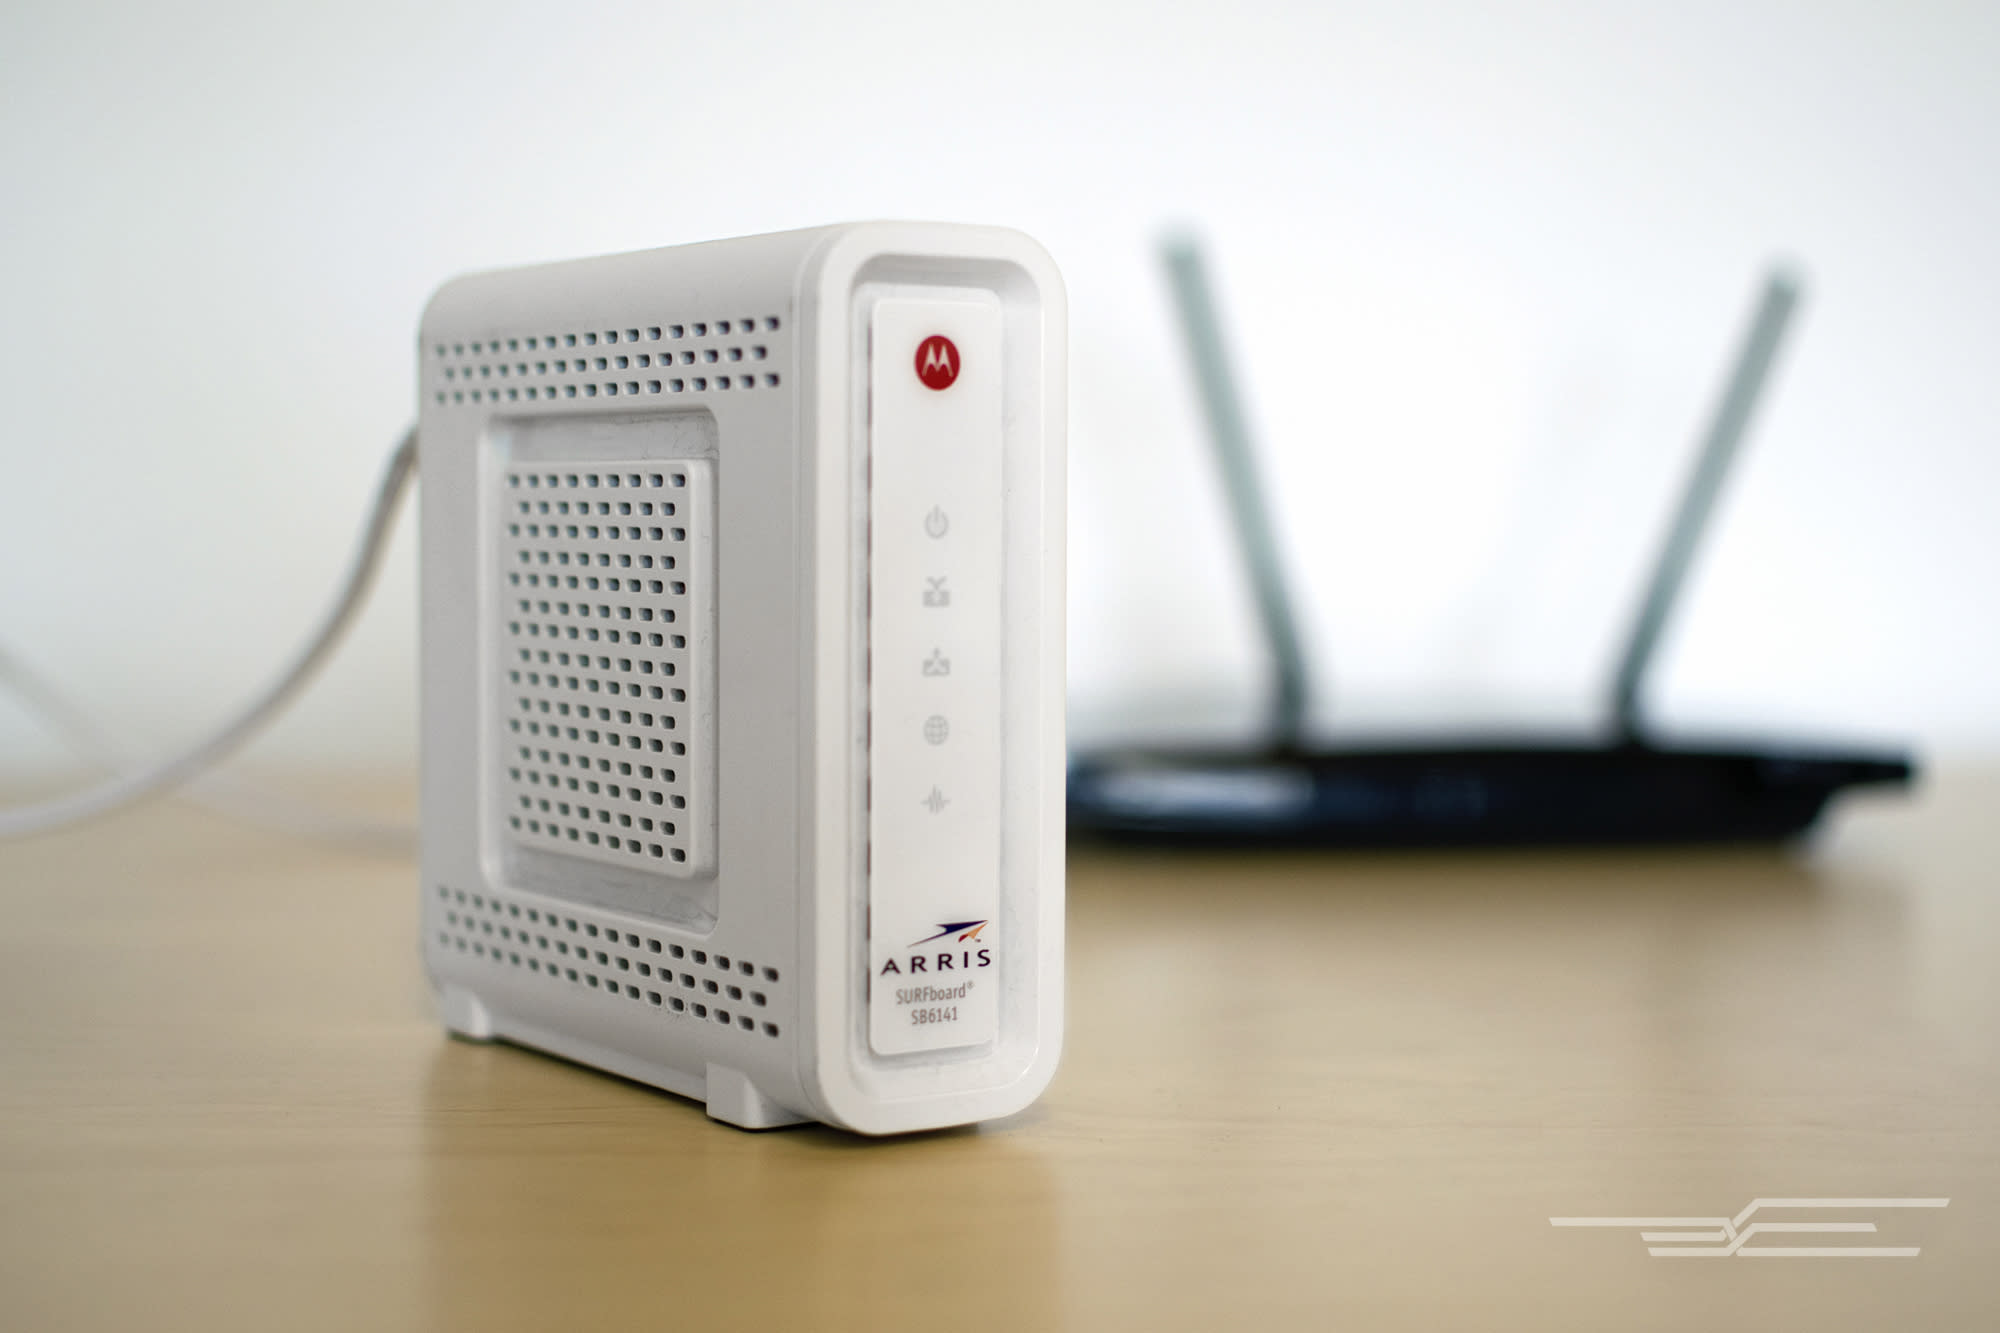 Best Modem For Comcast 2020 The best cable modem